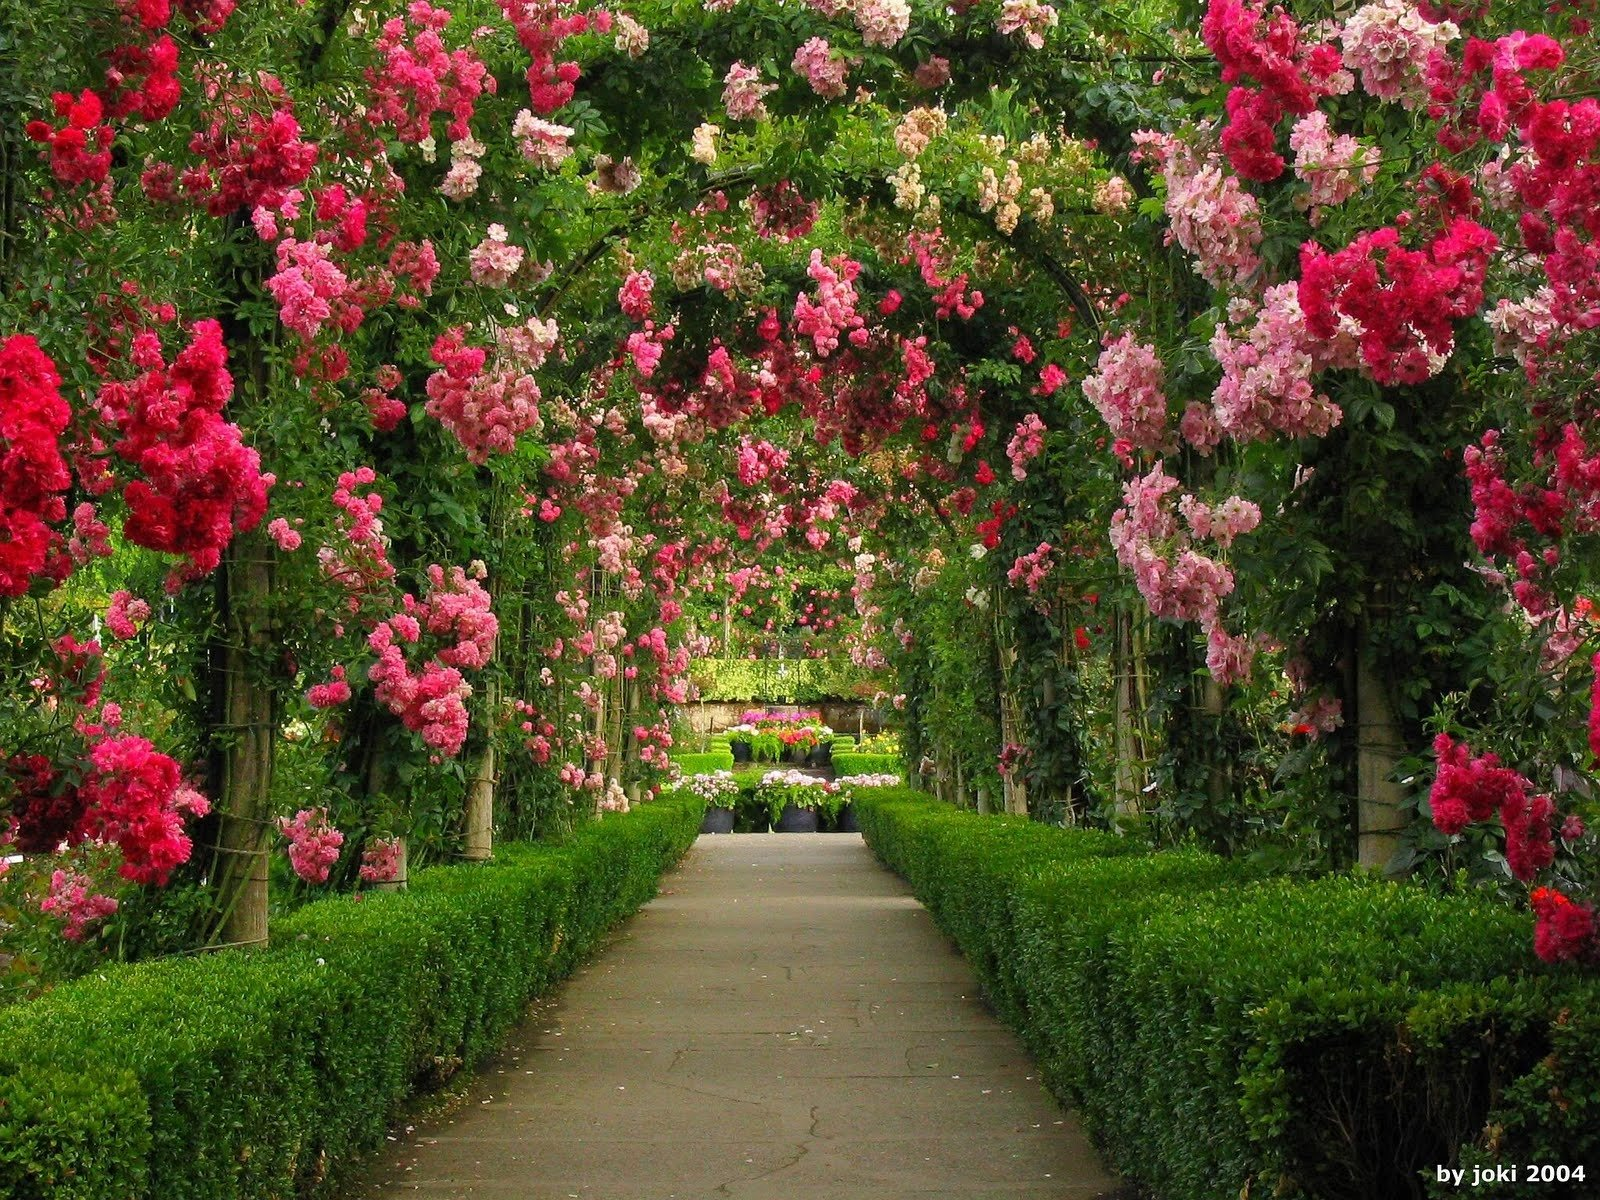 Arches in Rose Garden Wallpaper and Background Image | 1600x1200 ... for Green And Pink Flower Wallpaper  570bof